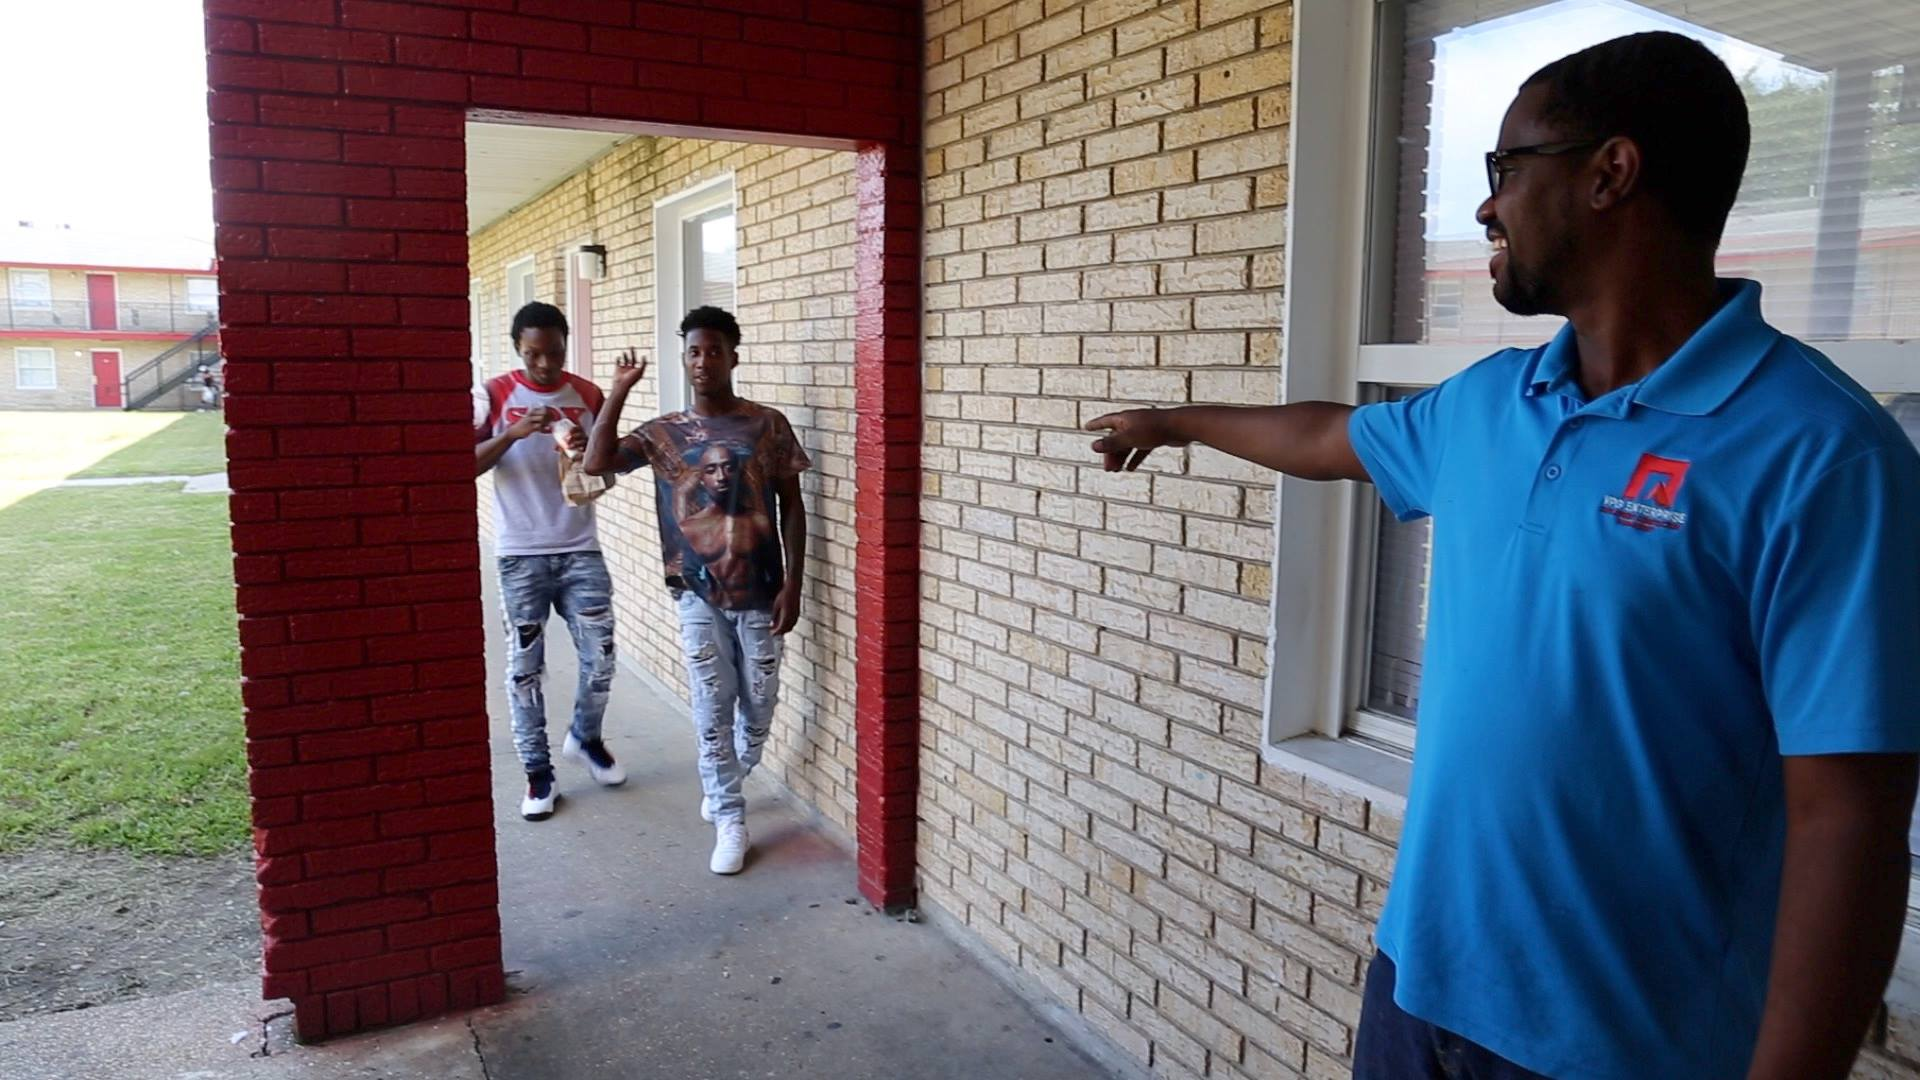 In 1 Algiers apartment complex, a developer hopes to reverse crime trends.